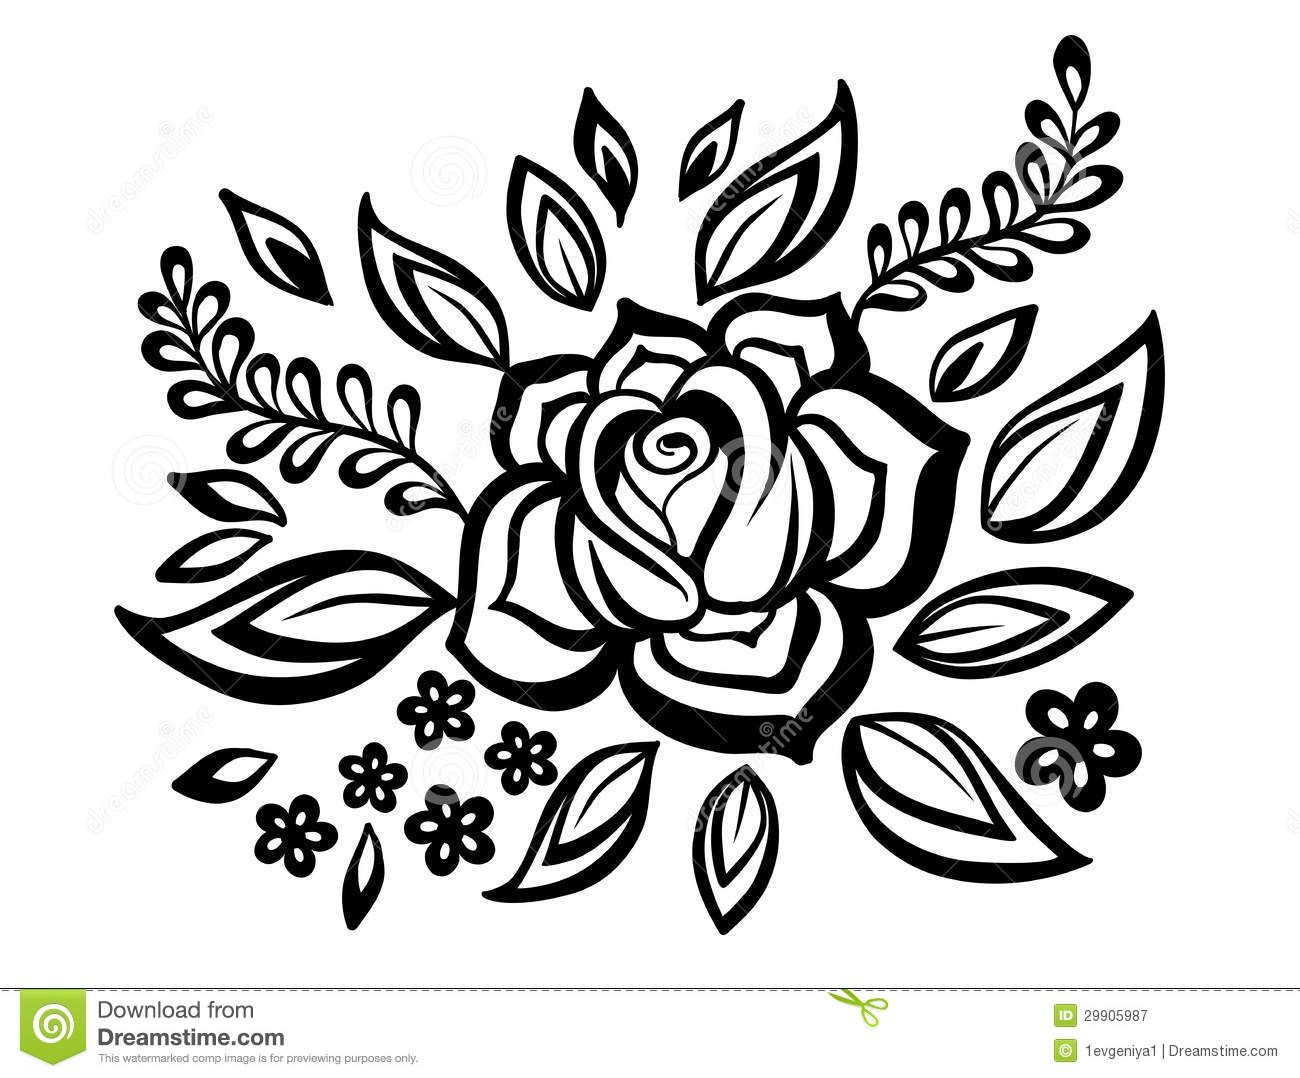 Design black and white emiliesbeauty black and white flowers and leaves design element with imitation guipure embroidery mightylinksfo